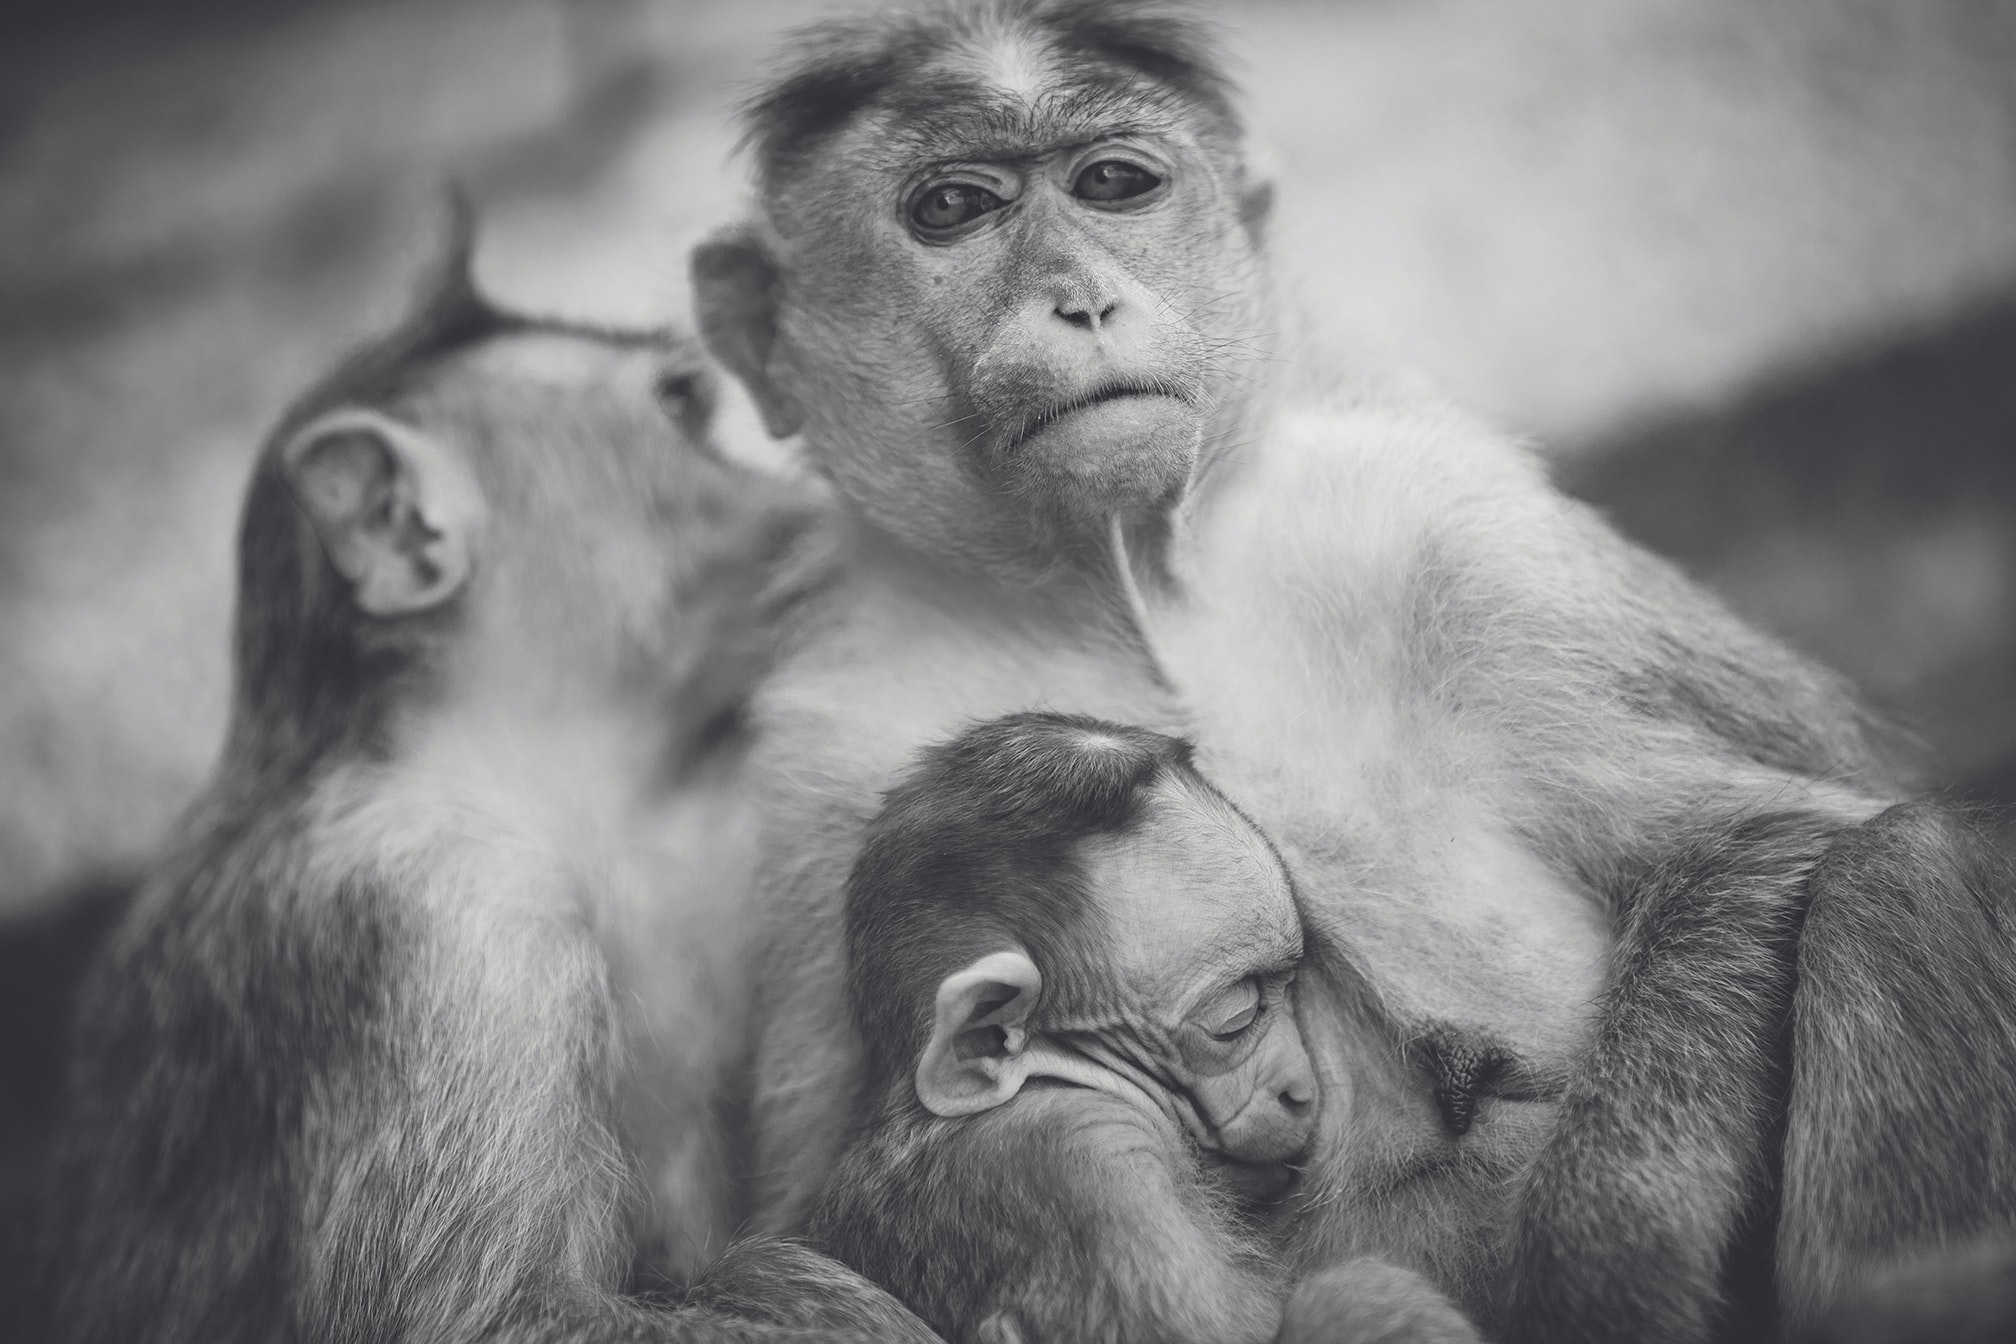 Thoughtful black and white photo of a family of monkeys clinging to one another